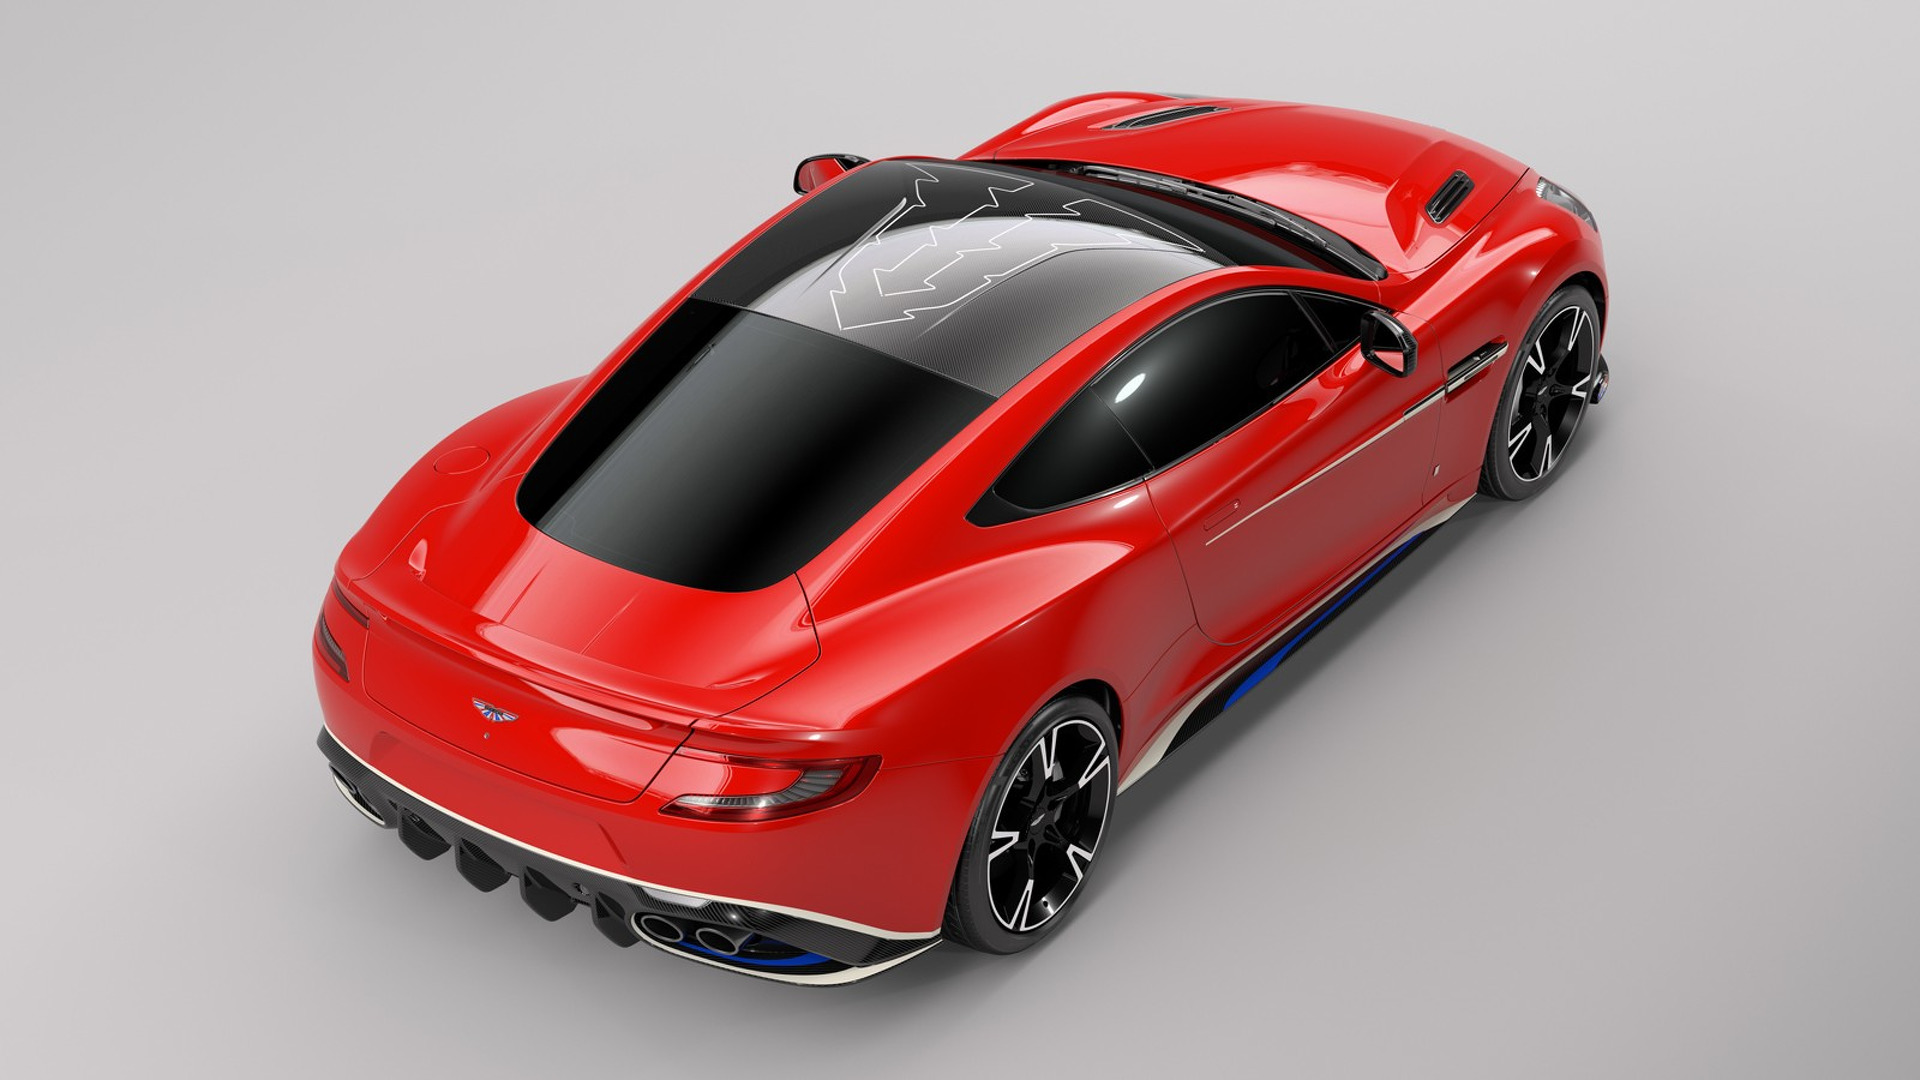 Aston Martin Vanquish S Red Arrows Edition (3)